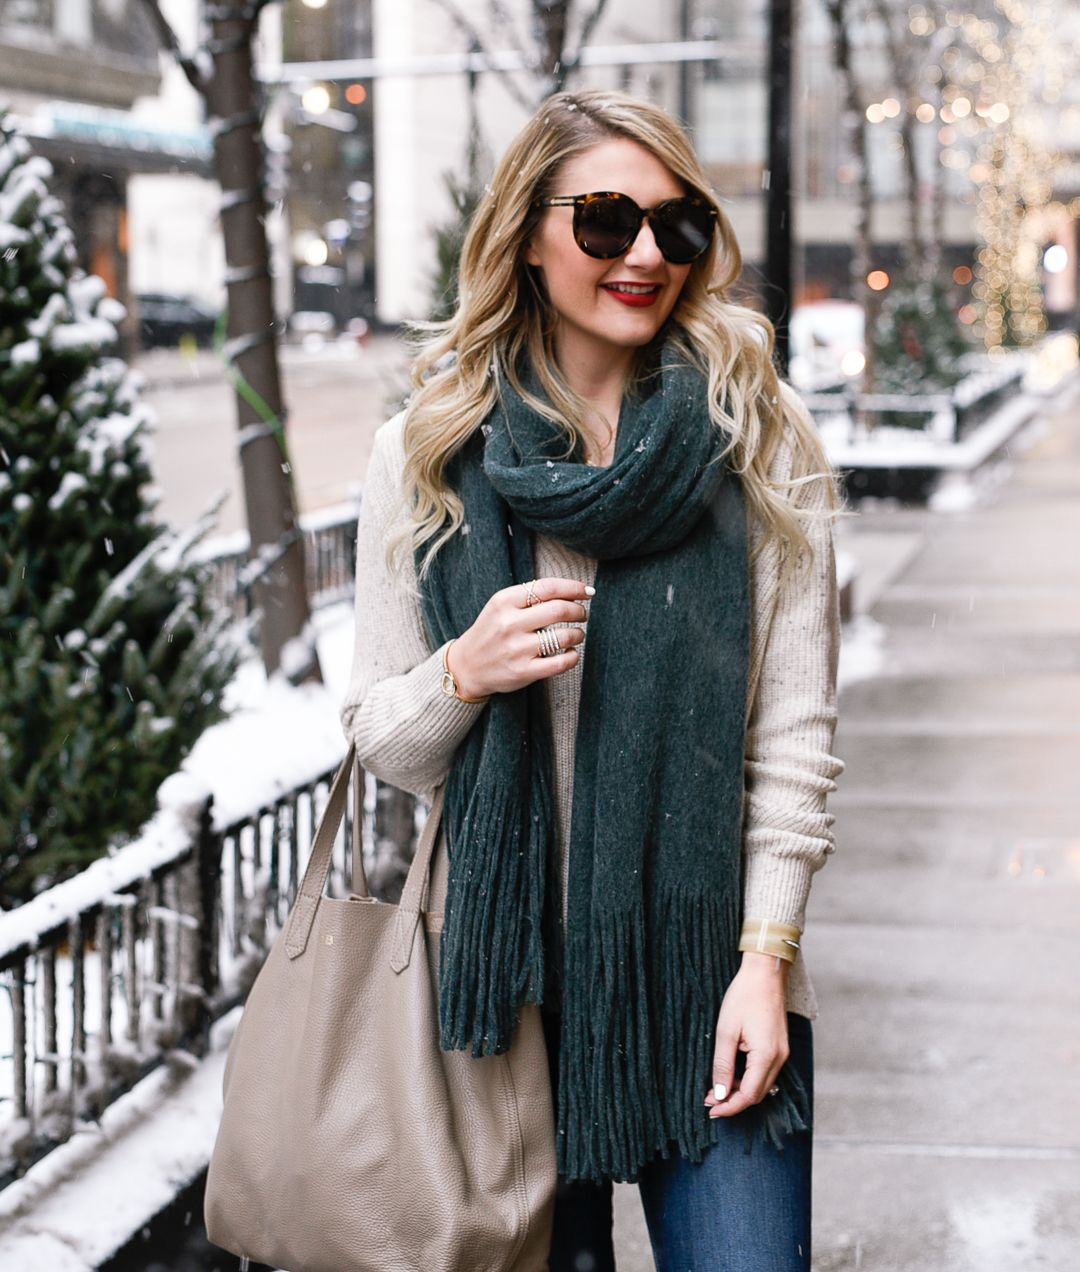 de3d0a3cc64 Dressing up a warm winter outfit with gorgeous jewelry and a cozy green  scarf.  fashion  winter  accessorize